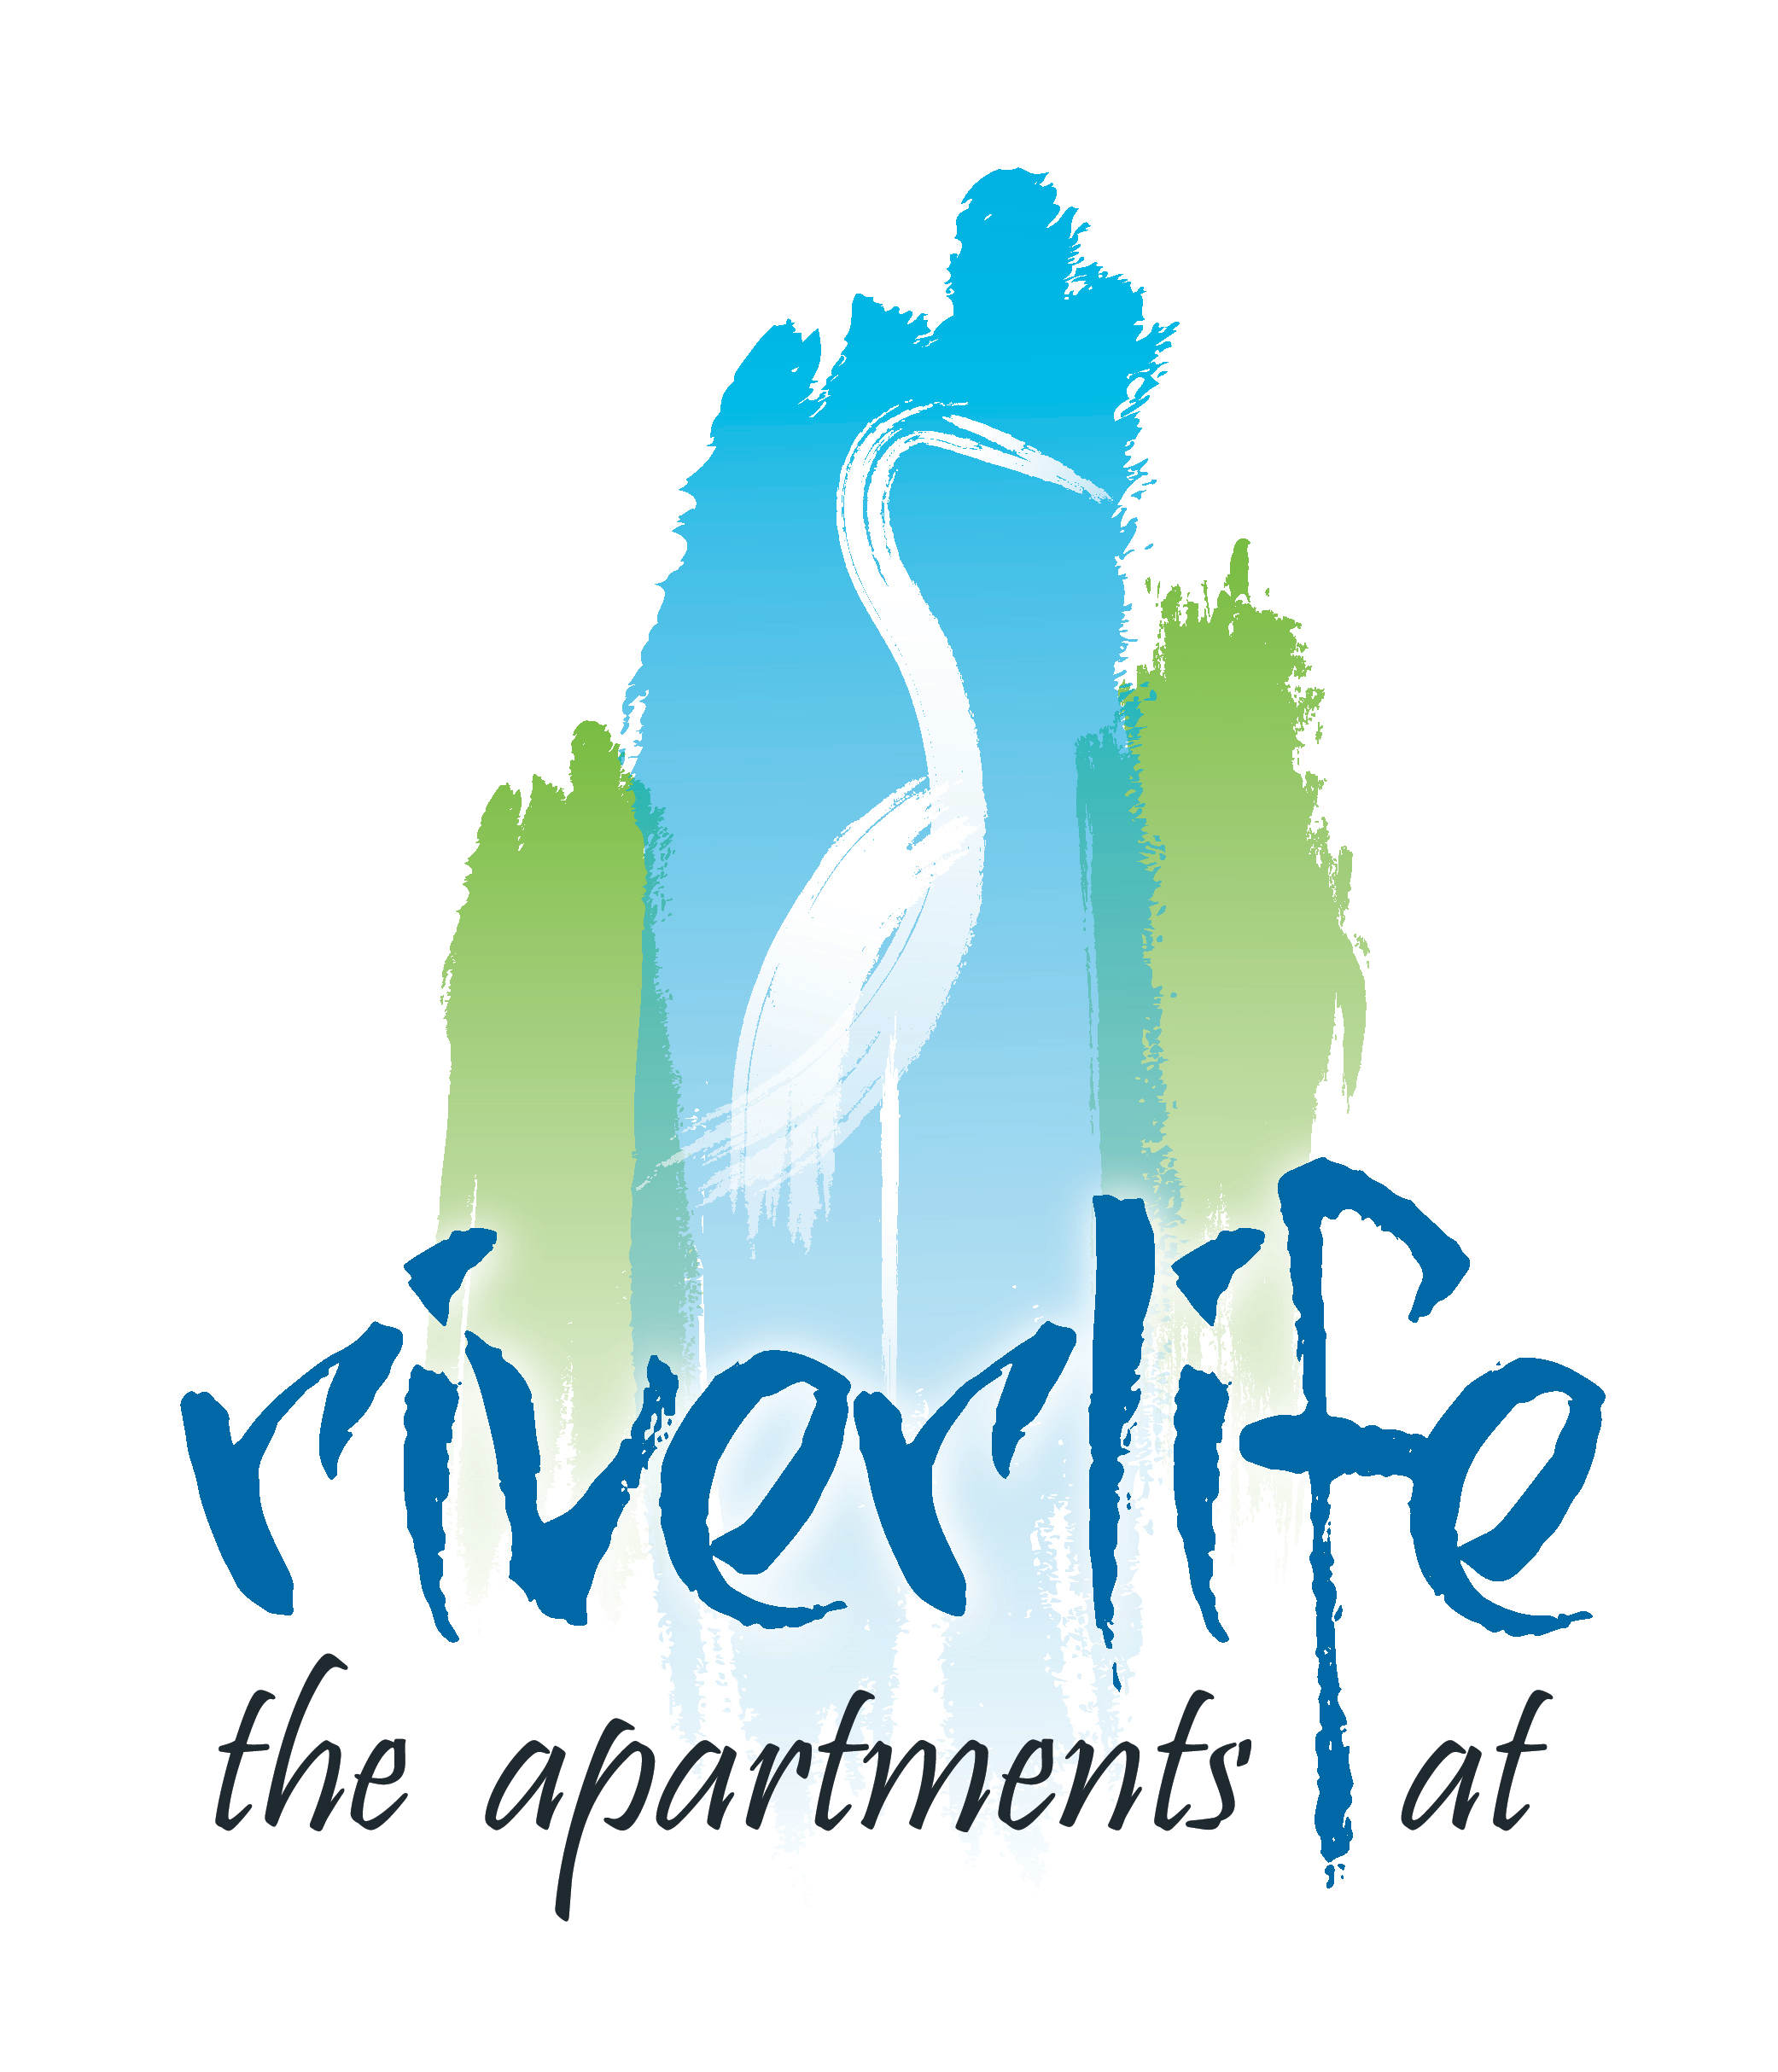 The Apartments At Riverlife Wausau